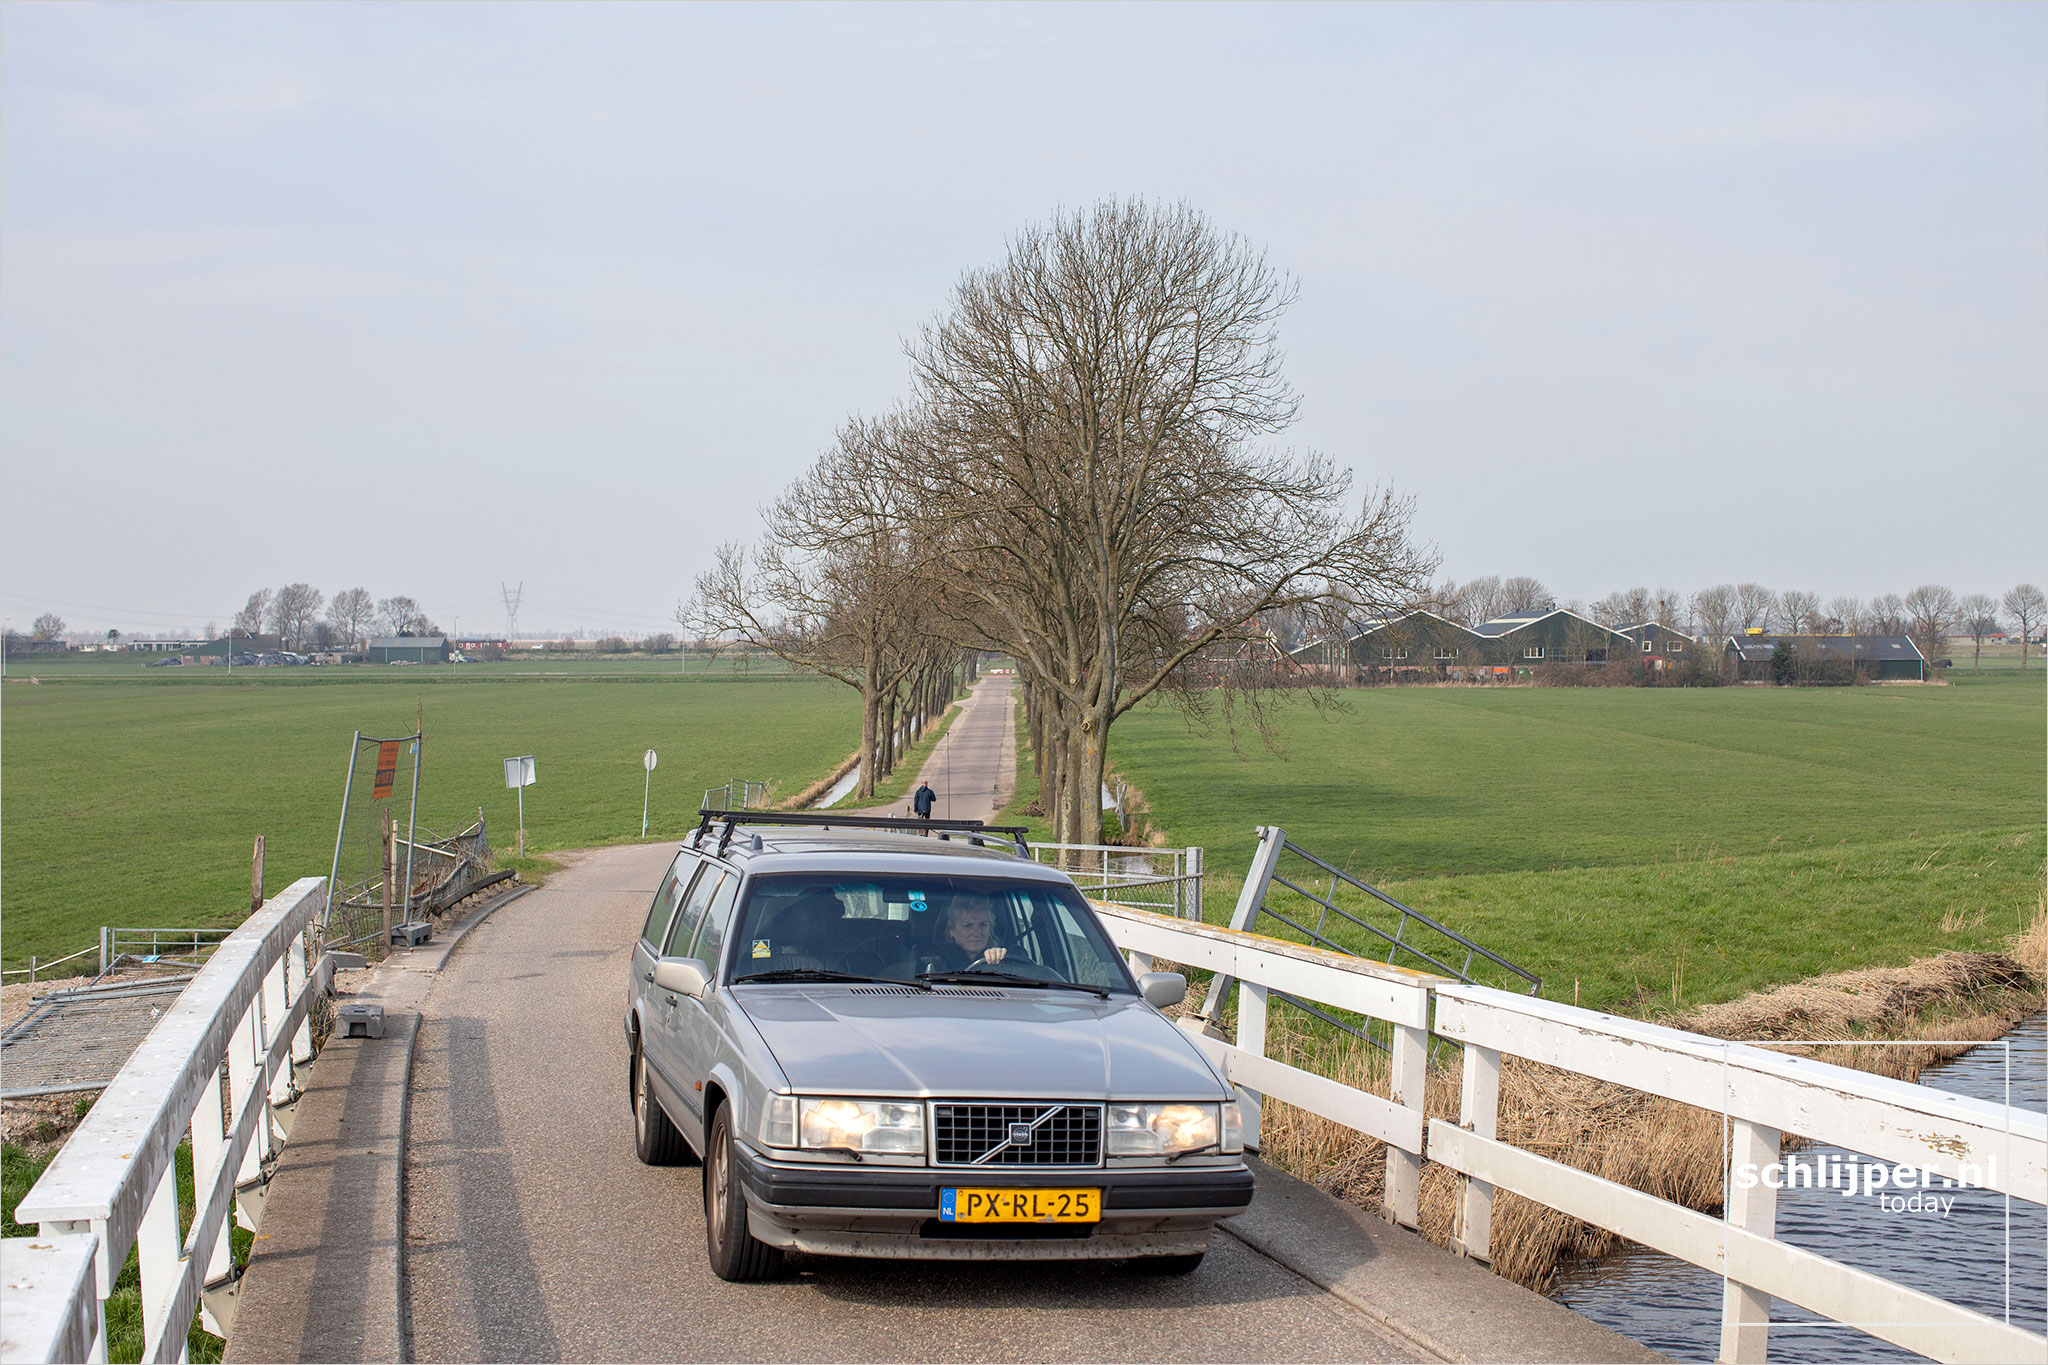 The Netherlands, Broek in Waterland, 24 maart 2021